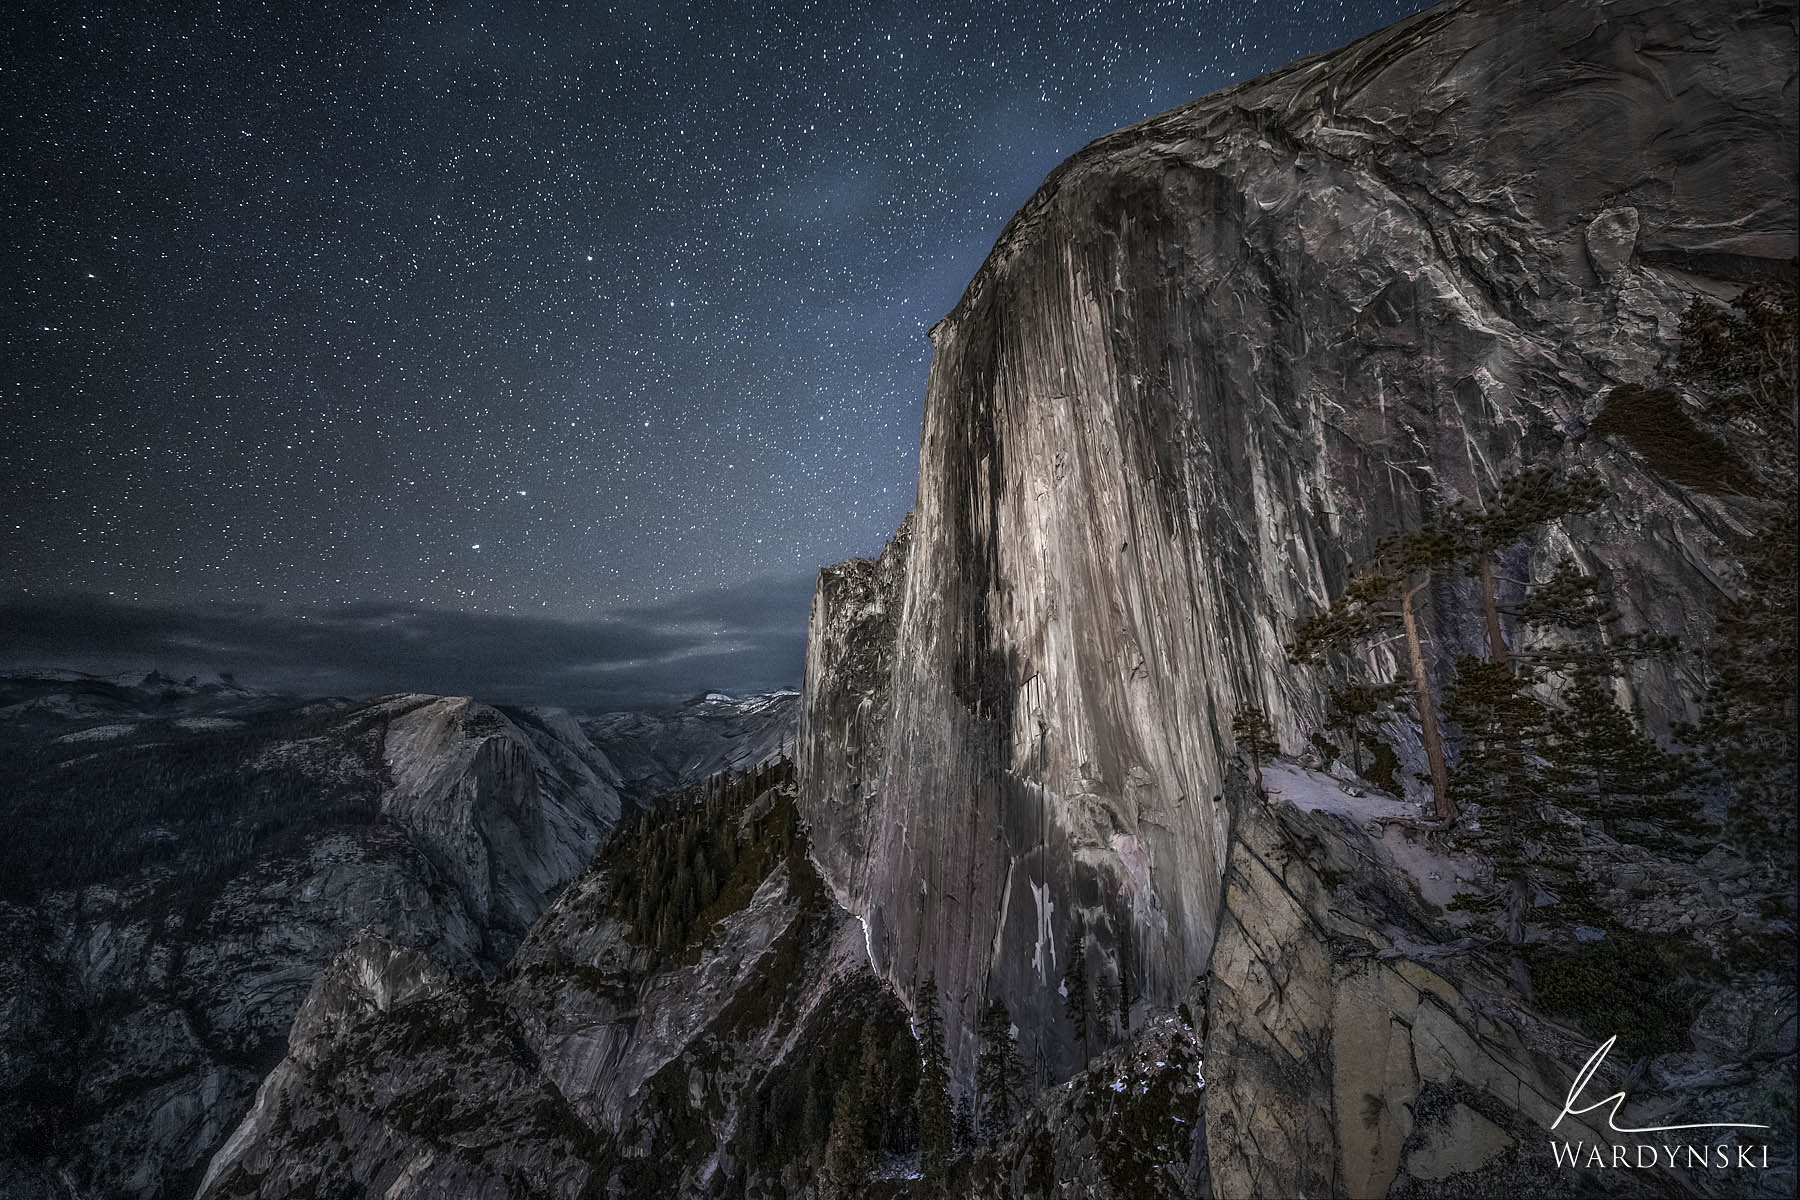 Halfdome, Night, Astro, Astrophotography, Yosemite, National Park, Diving Board, stars, sky, sierra nevads, california, fine...